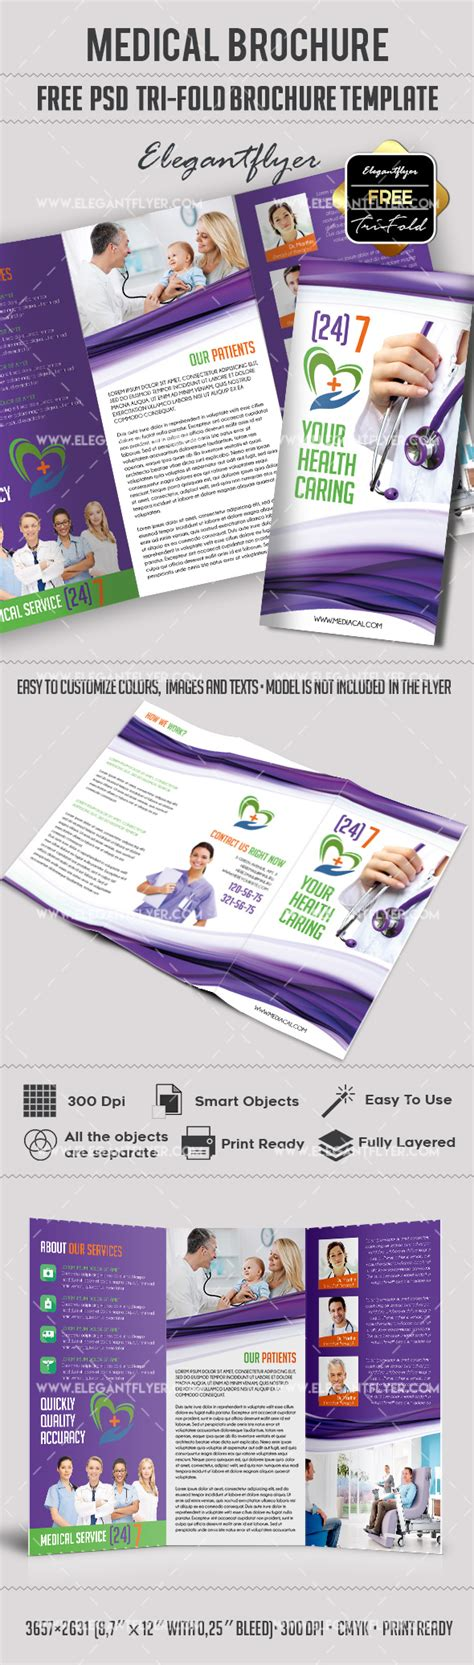 Tri Fold Brochure Templates Free By Elegantflyer Free Tri Fold Psd Brochure Template By